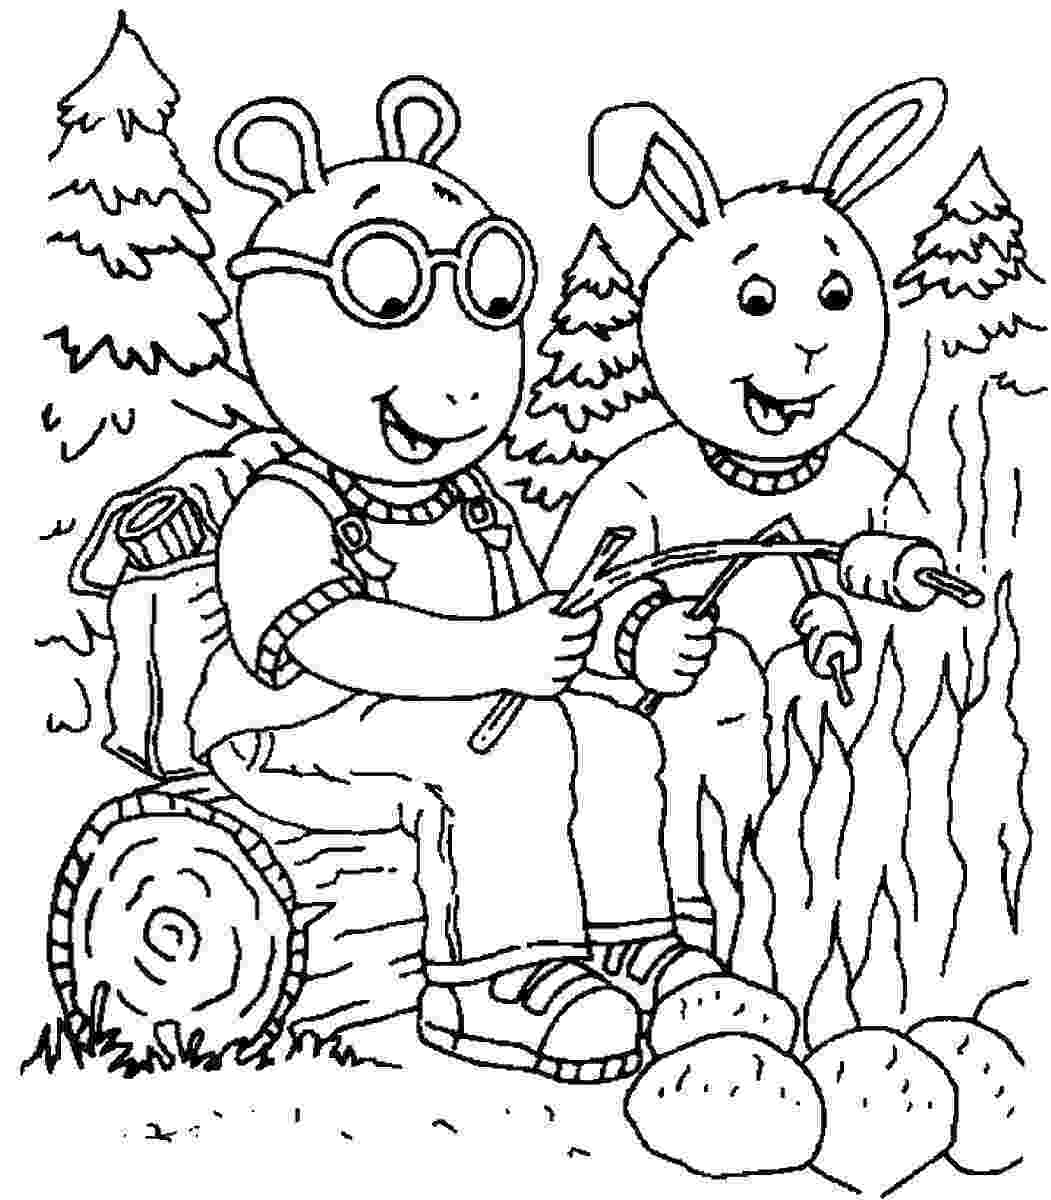 arthur coloring pages arthur coloring pages to download and print for free coloring pages arthur